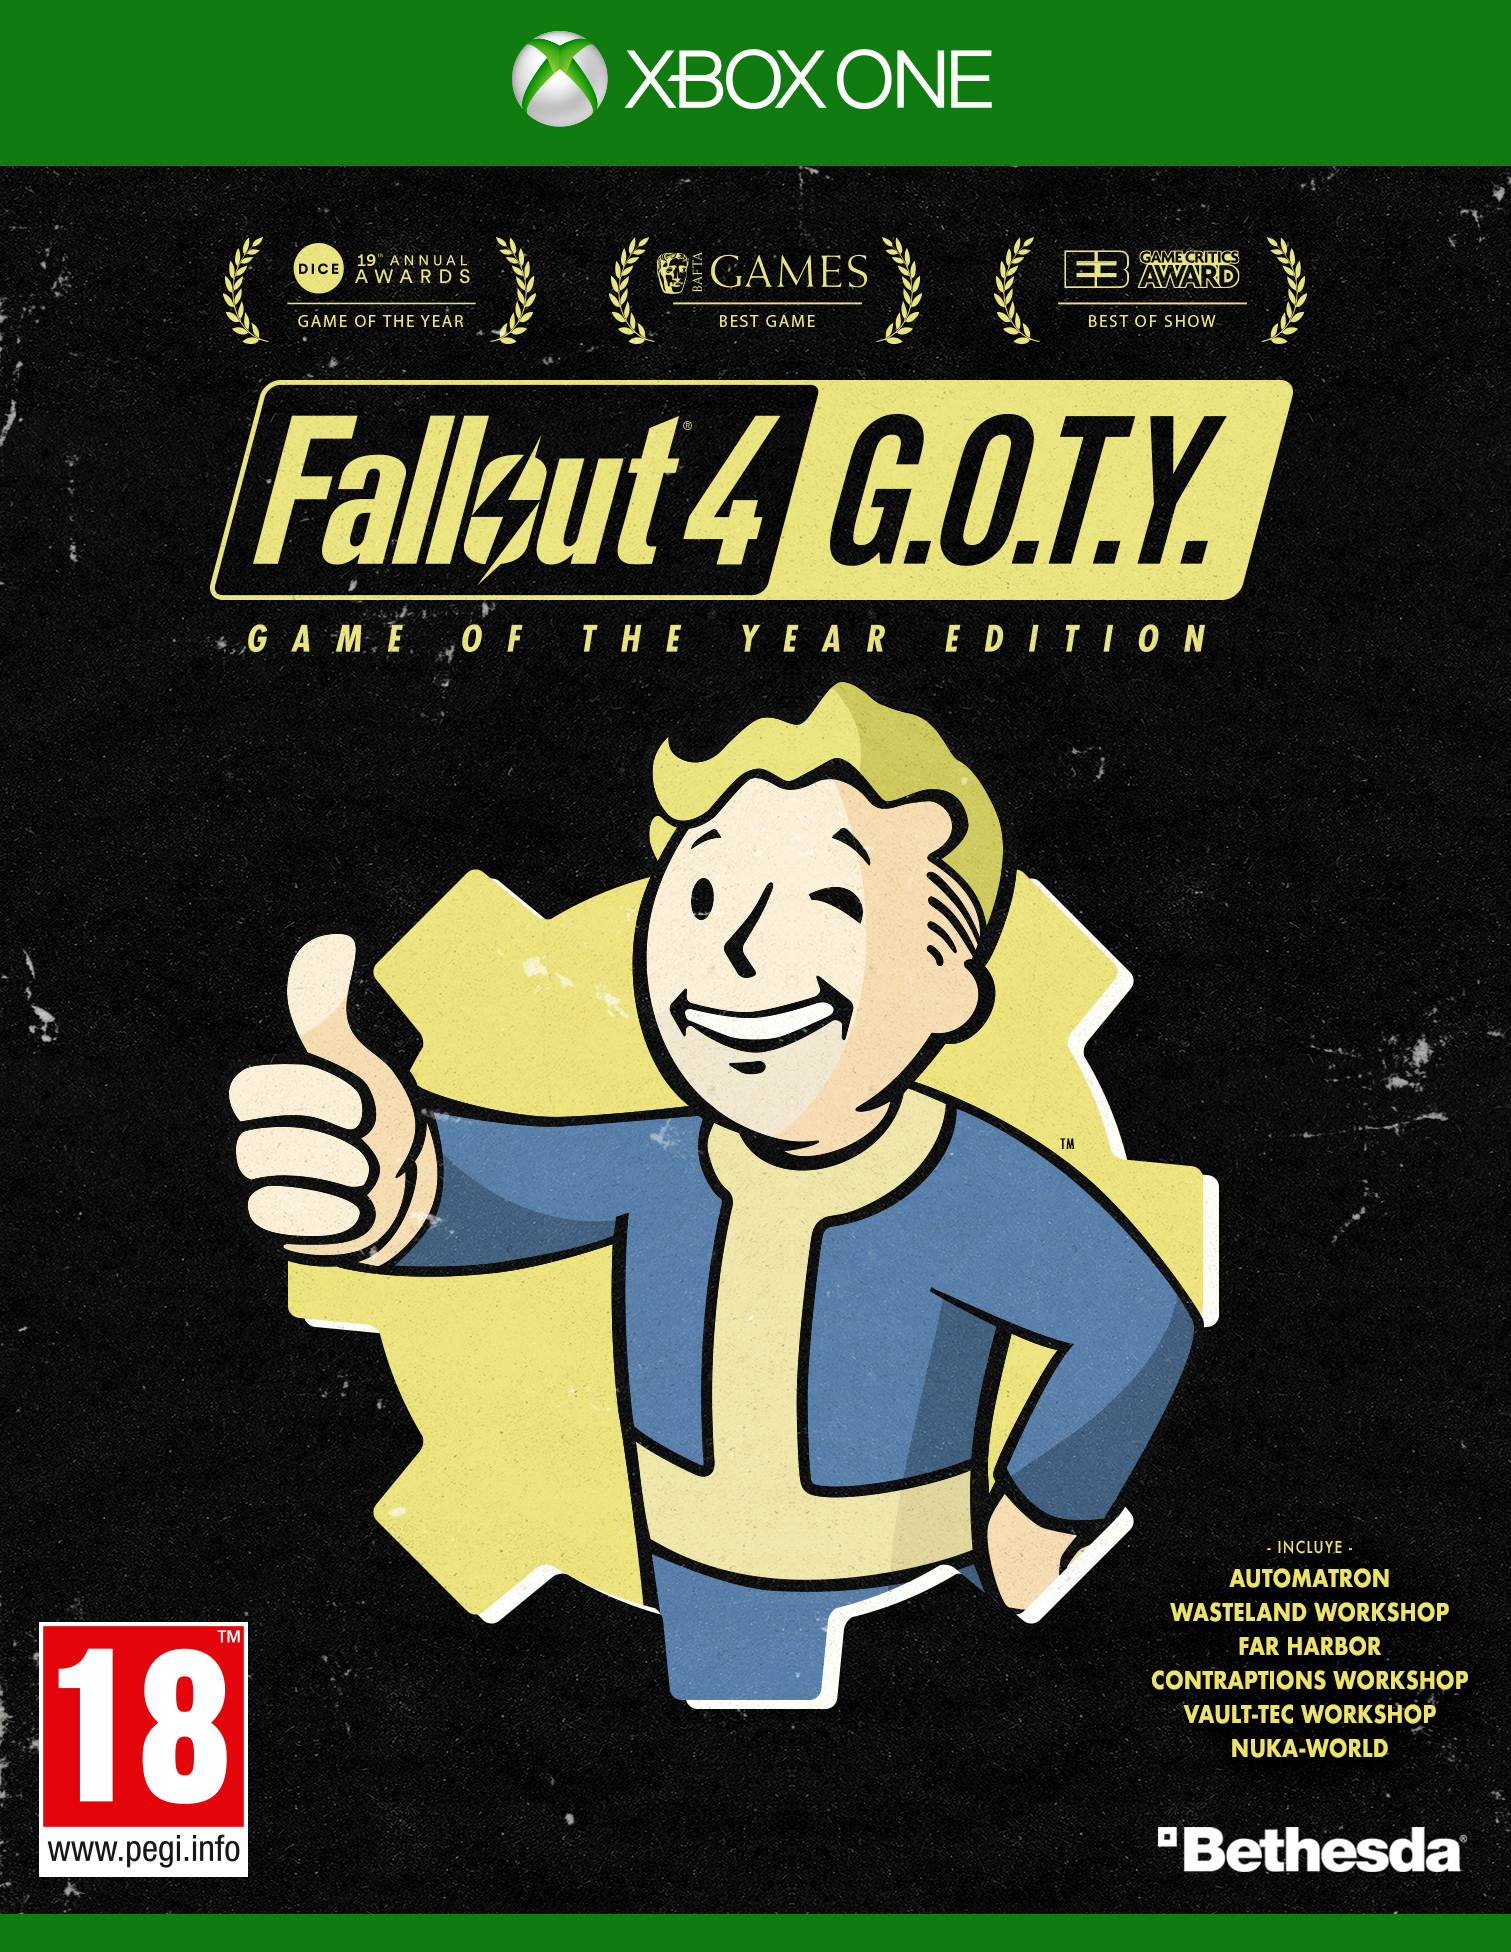 Fallout 4 Game of the Year Edition Xbox One Boxart